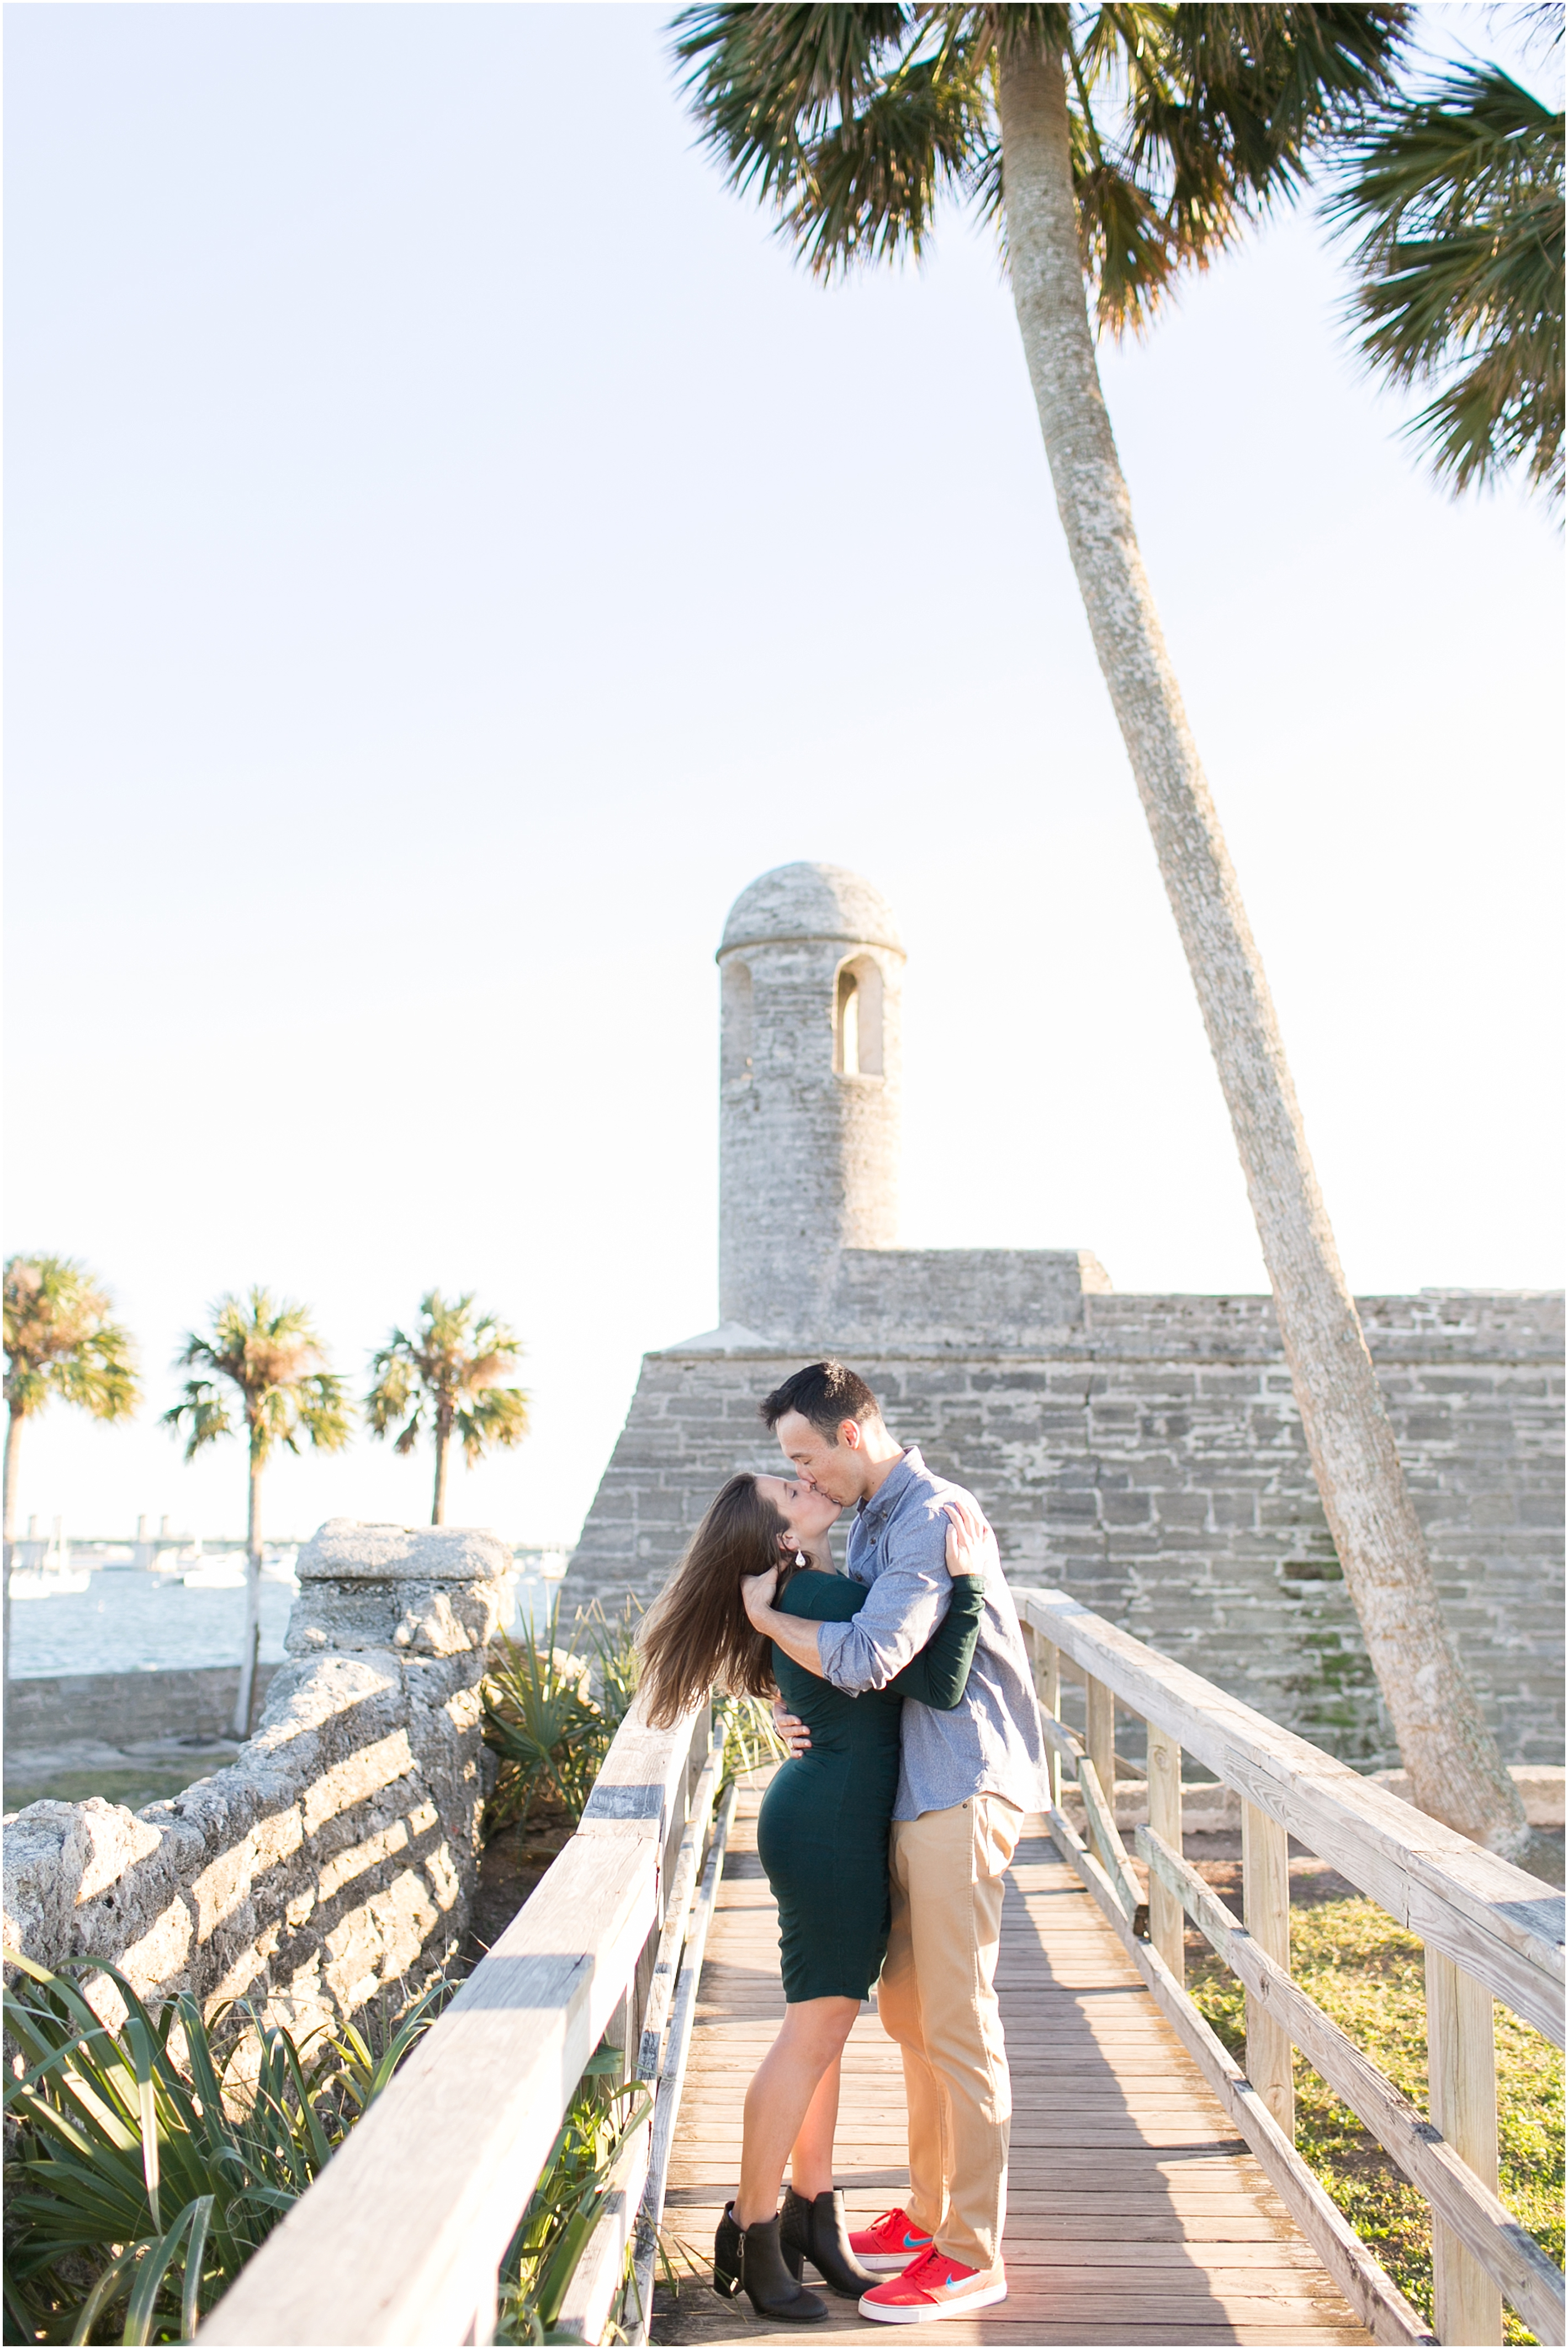 va_jessica_ryan_photography_st_augustine_florida_destination_engagement_photography_0134